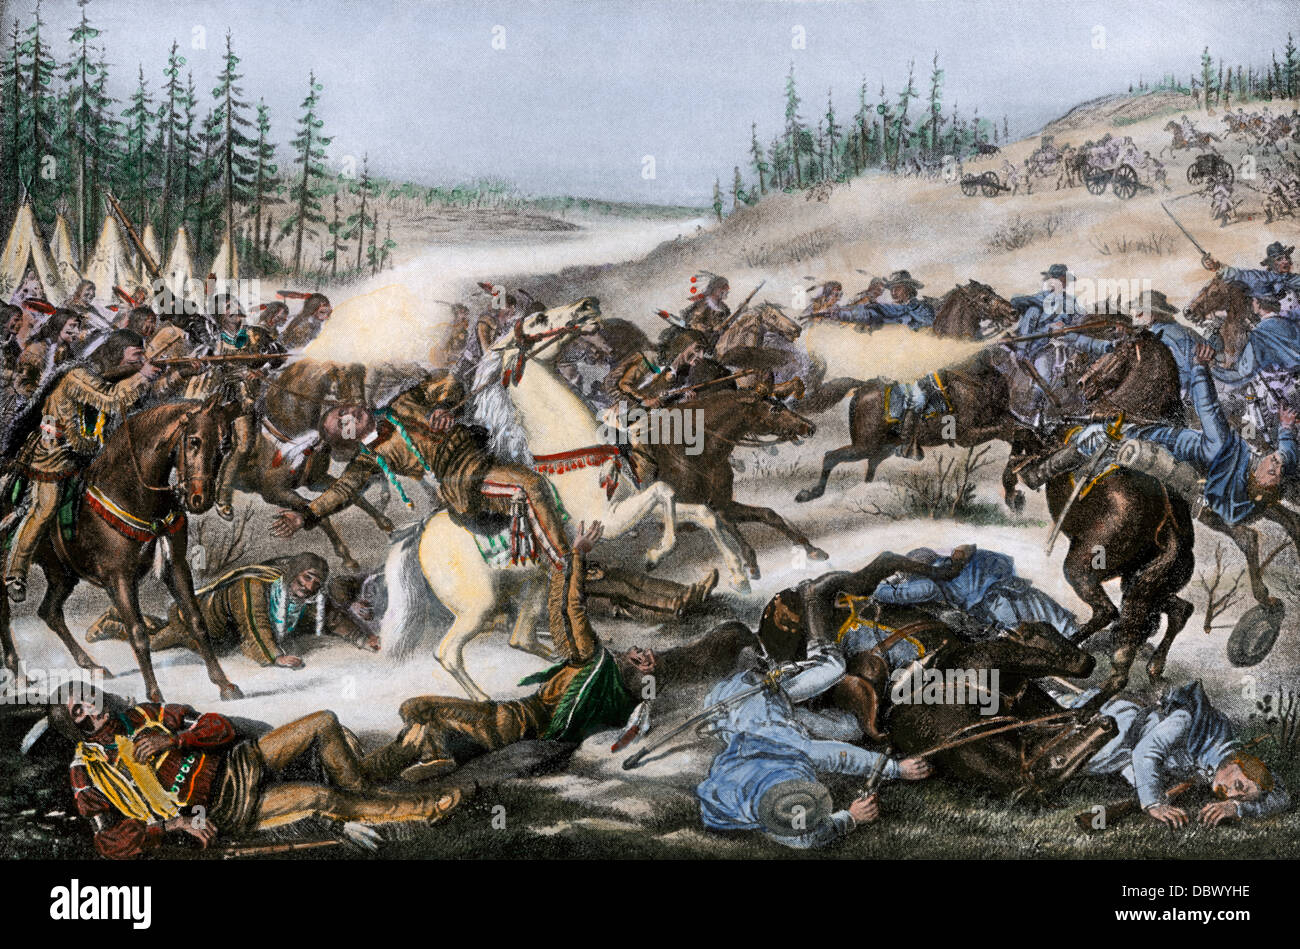 Capture and death of Chief Sitting Bull in South Dakota, 1890. Hand-colored halftone reproduction of an illustration - Stock Image